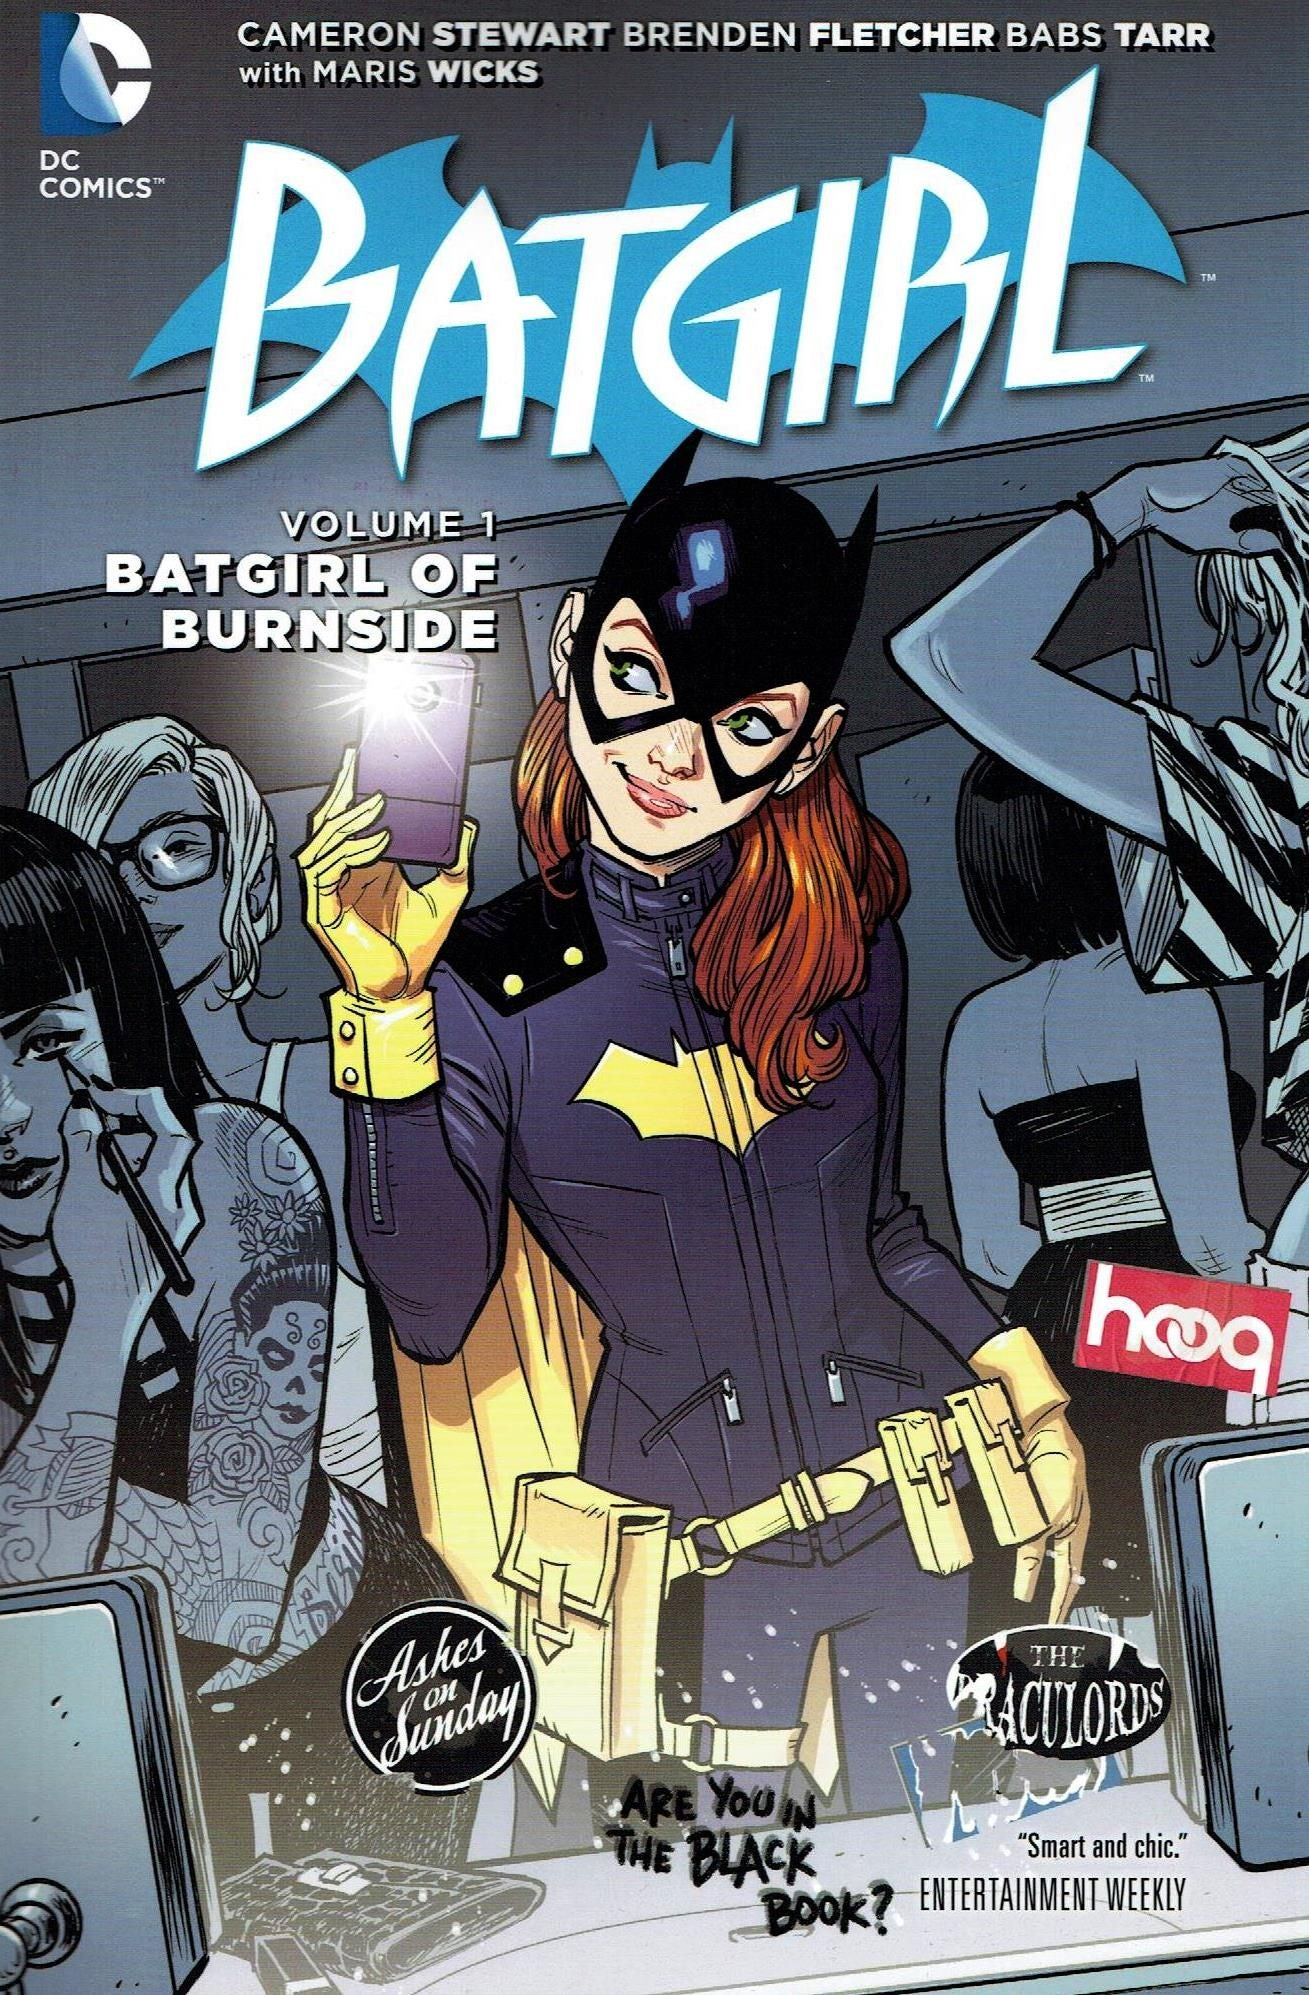 Batgirl: Batgirl of Burnside (The New 52) Volume 1